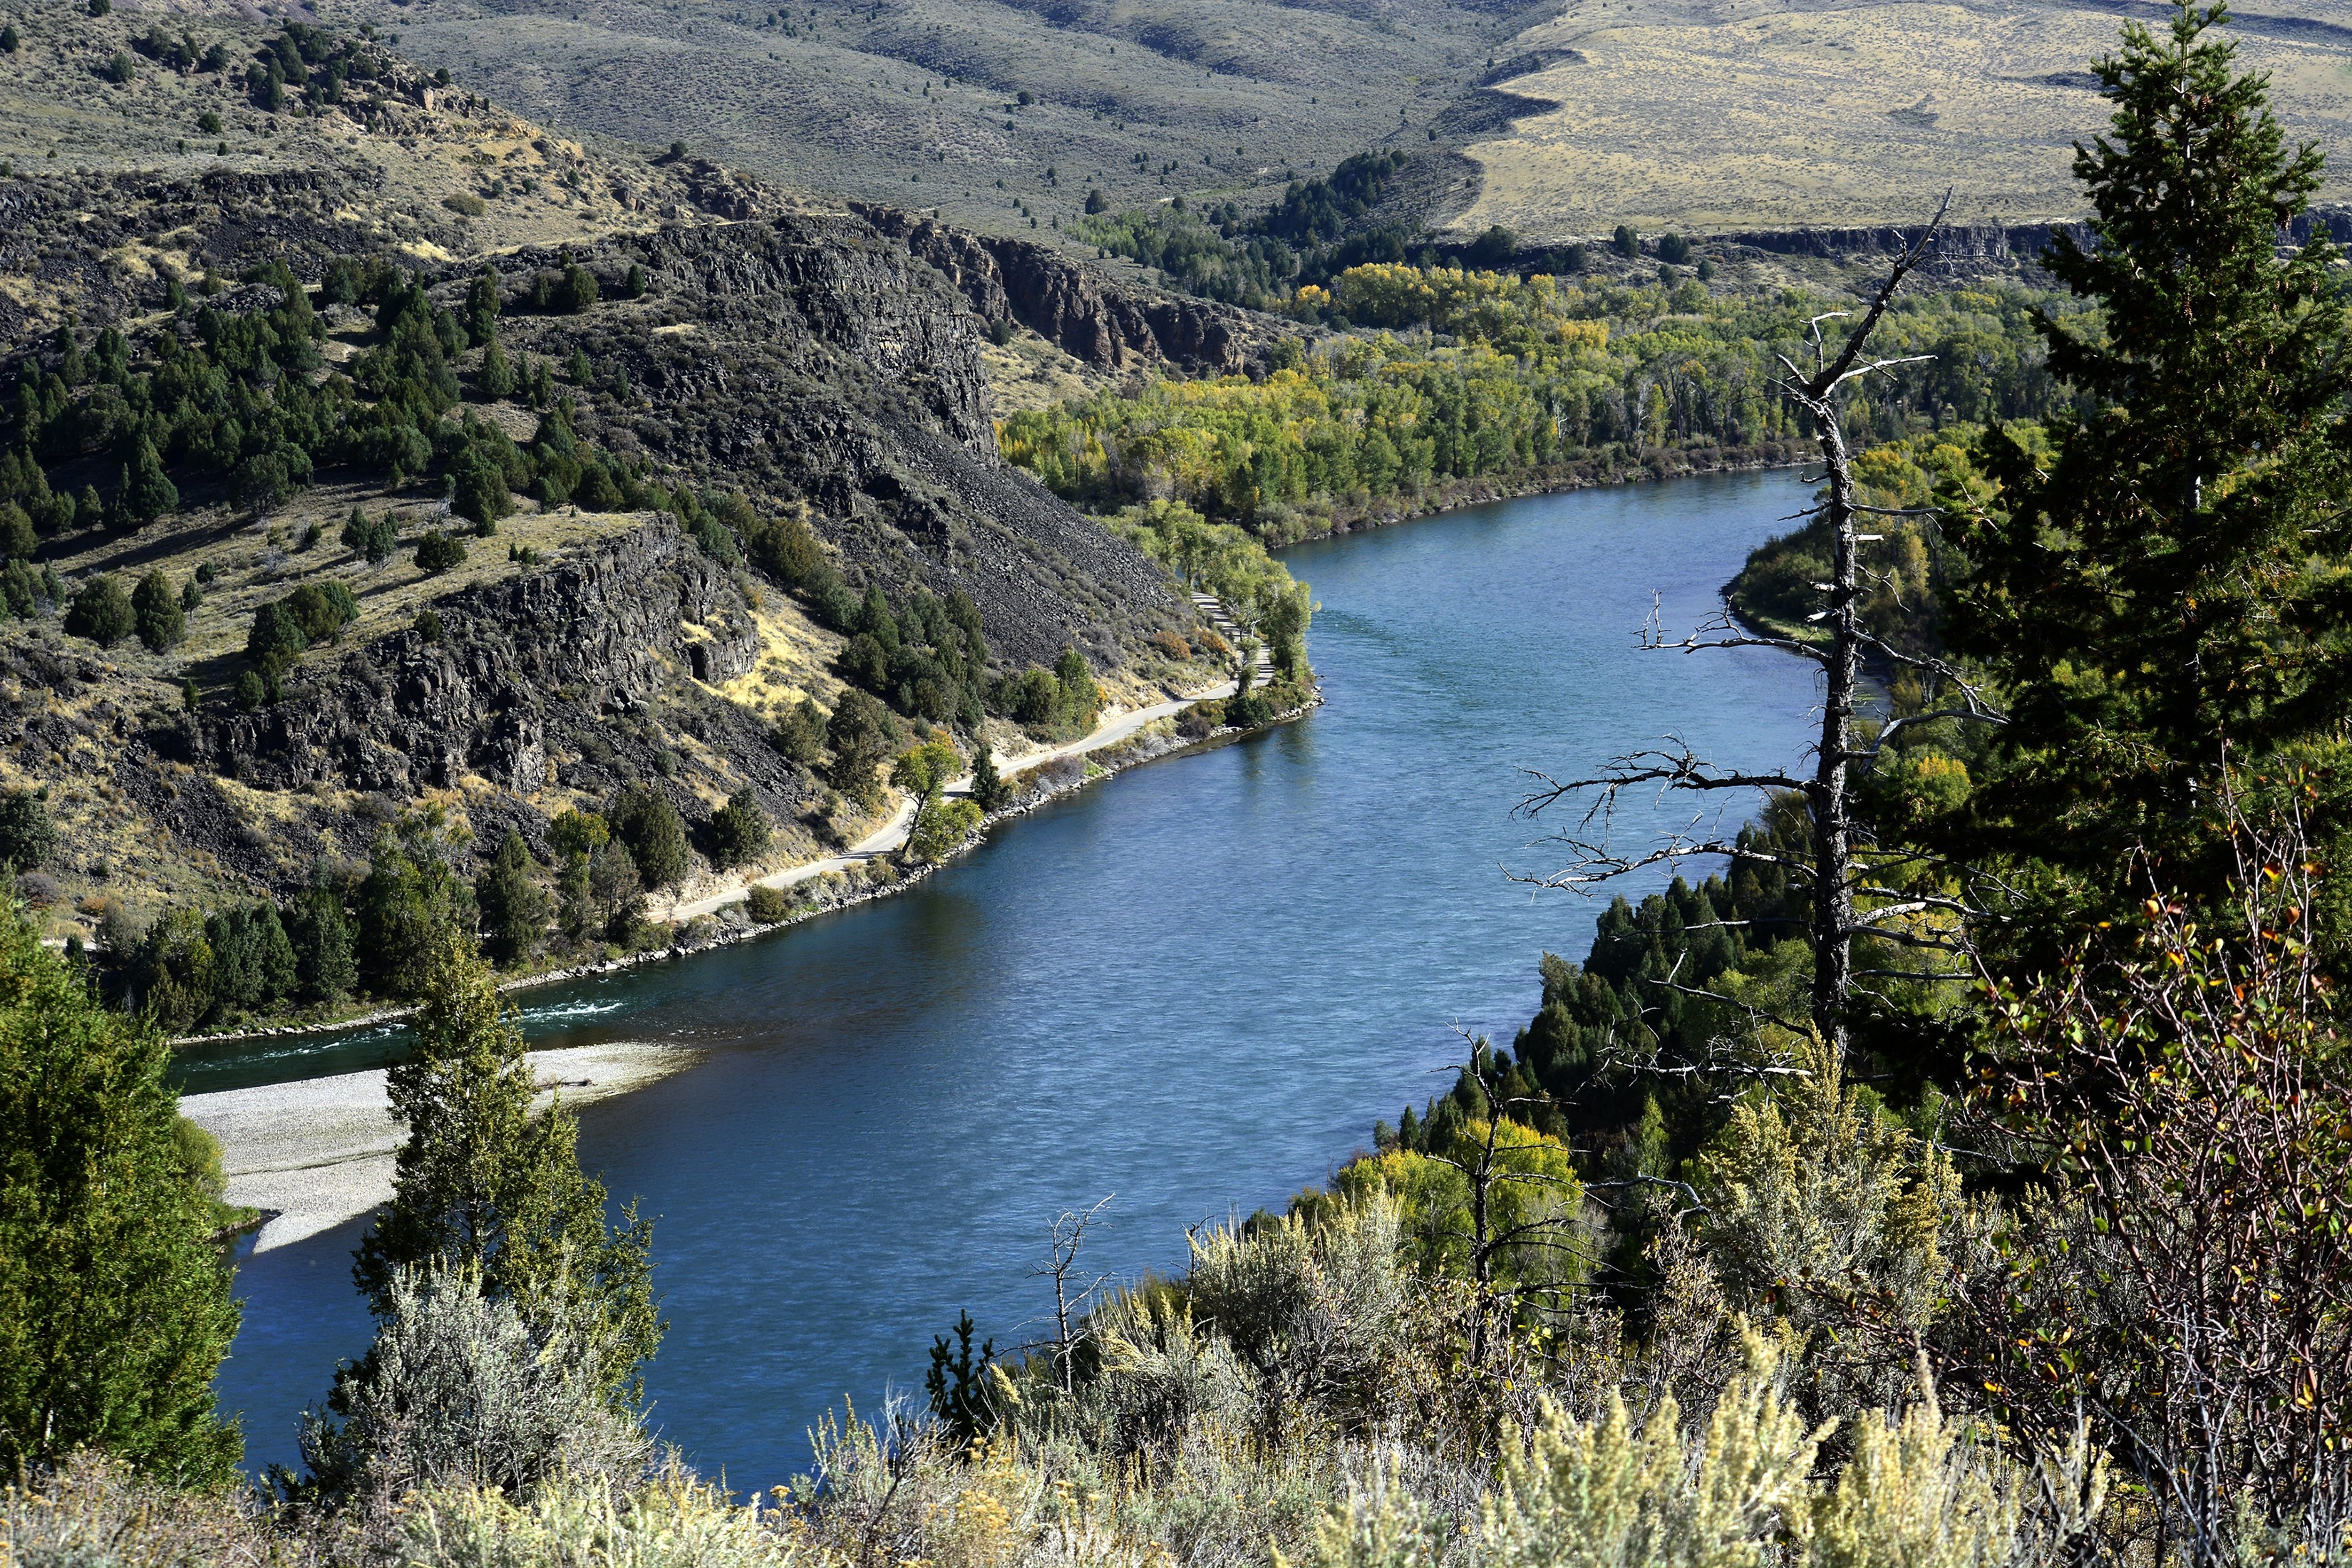 Snake-River-Valley-winding-through-forests.jpg?mtime=20200129110612#asset:107821